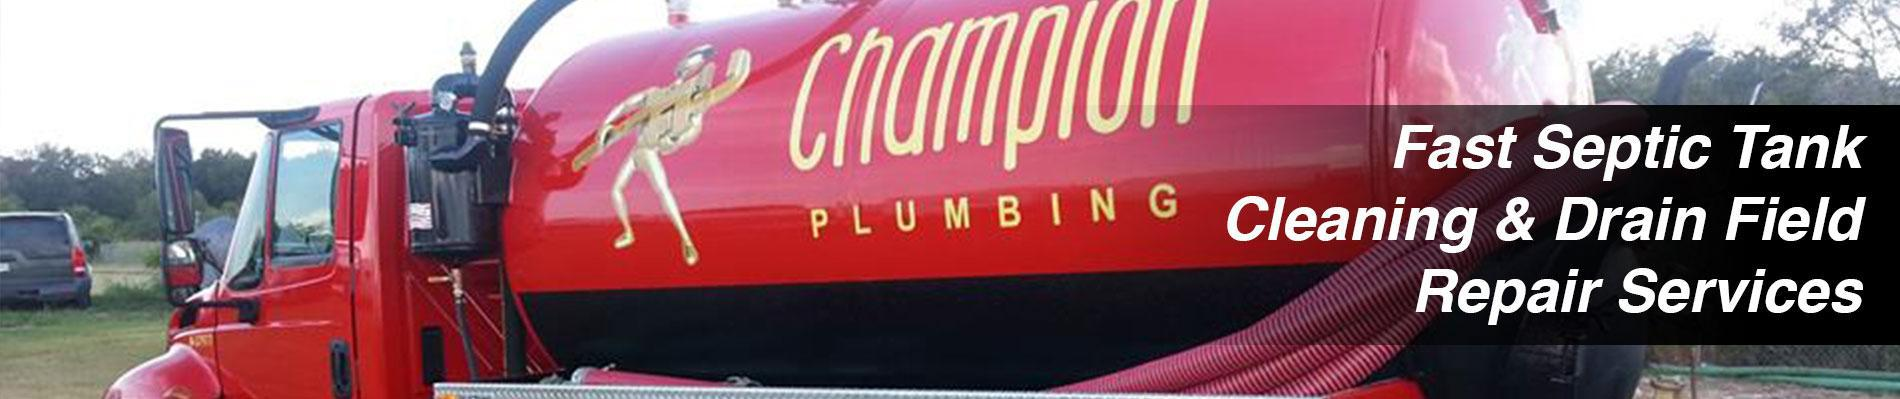 Champion Plumbing Greater San Antonio, TX Area